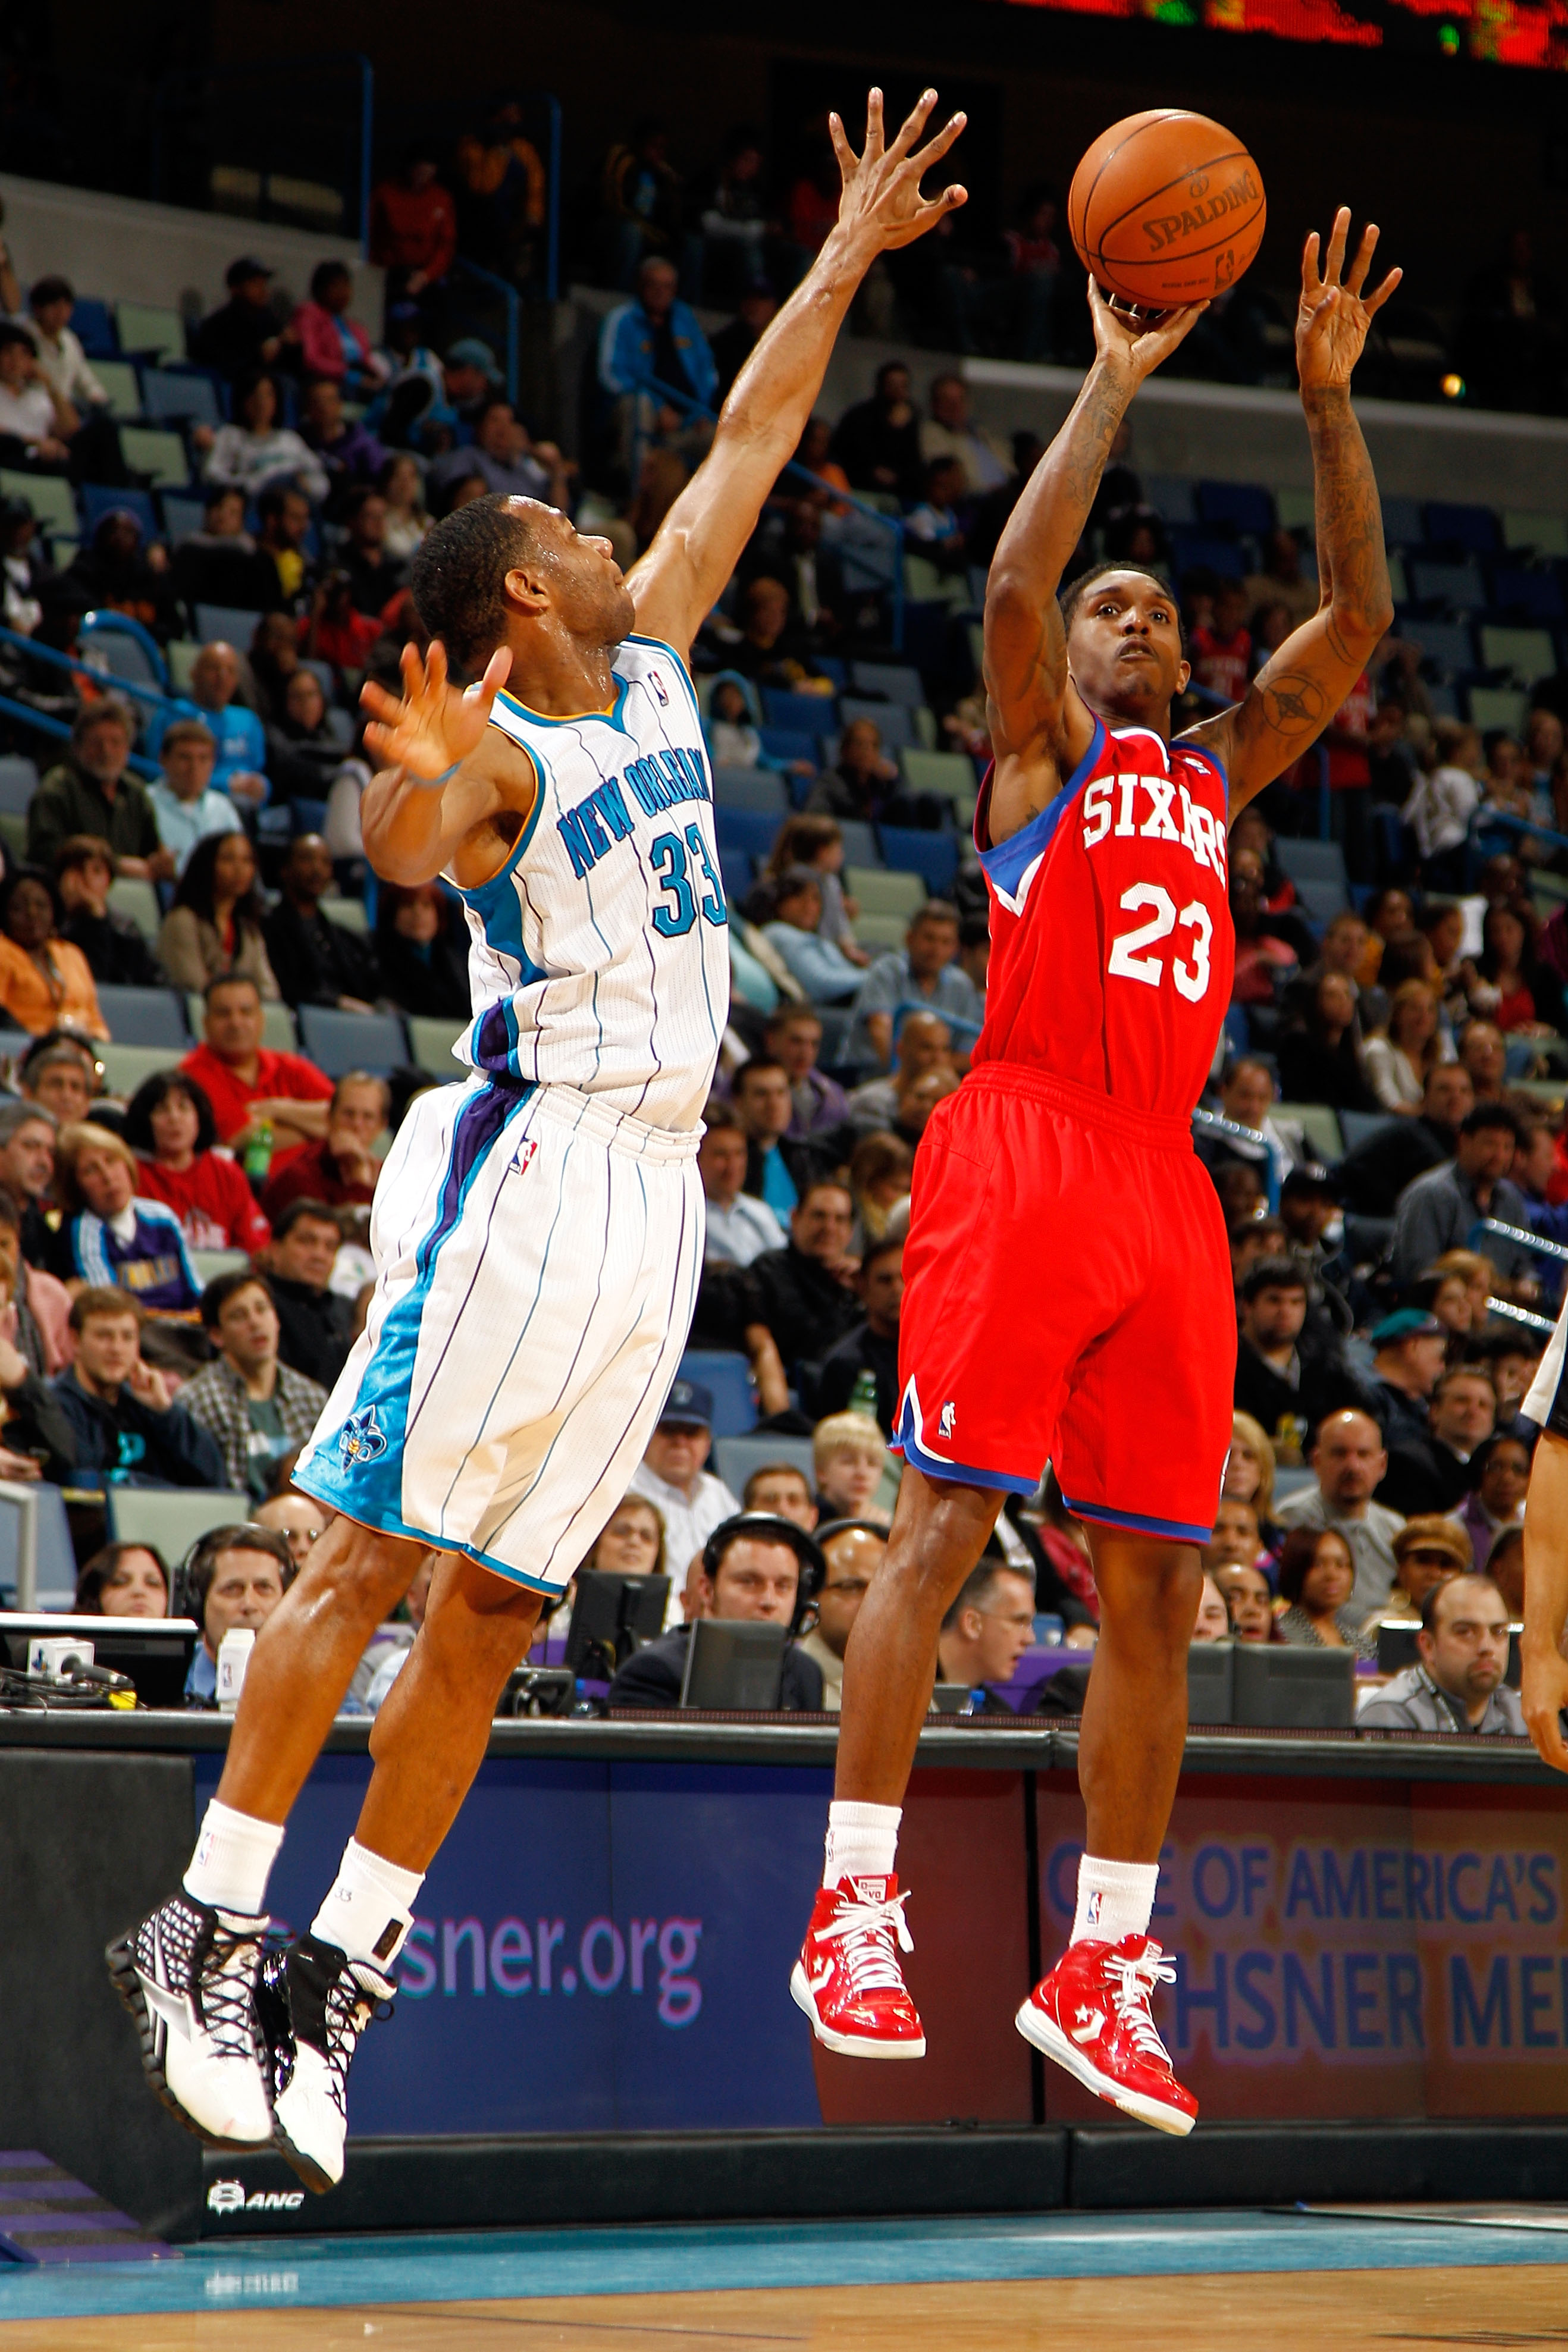 NEW ORLEANS, LA - JANUARY 03:  Lou Williams #23 of the Philadelphia 76ers shoots over Willie Green #33 of the New Orleans Hornets at New Orleans Arena on January 3, 2011 in New Orleans, Louisiana. NOTE TO USER: User expressly acknowledges and agrees that,